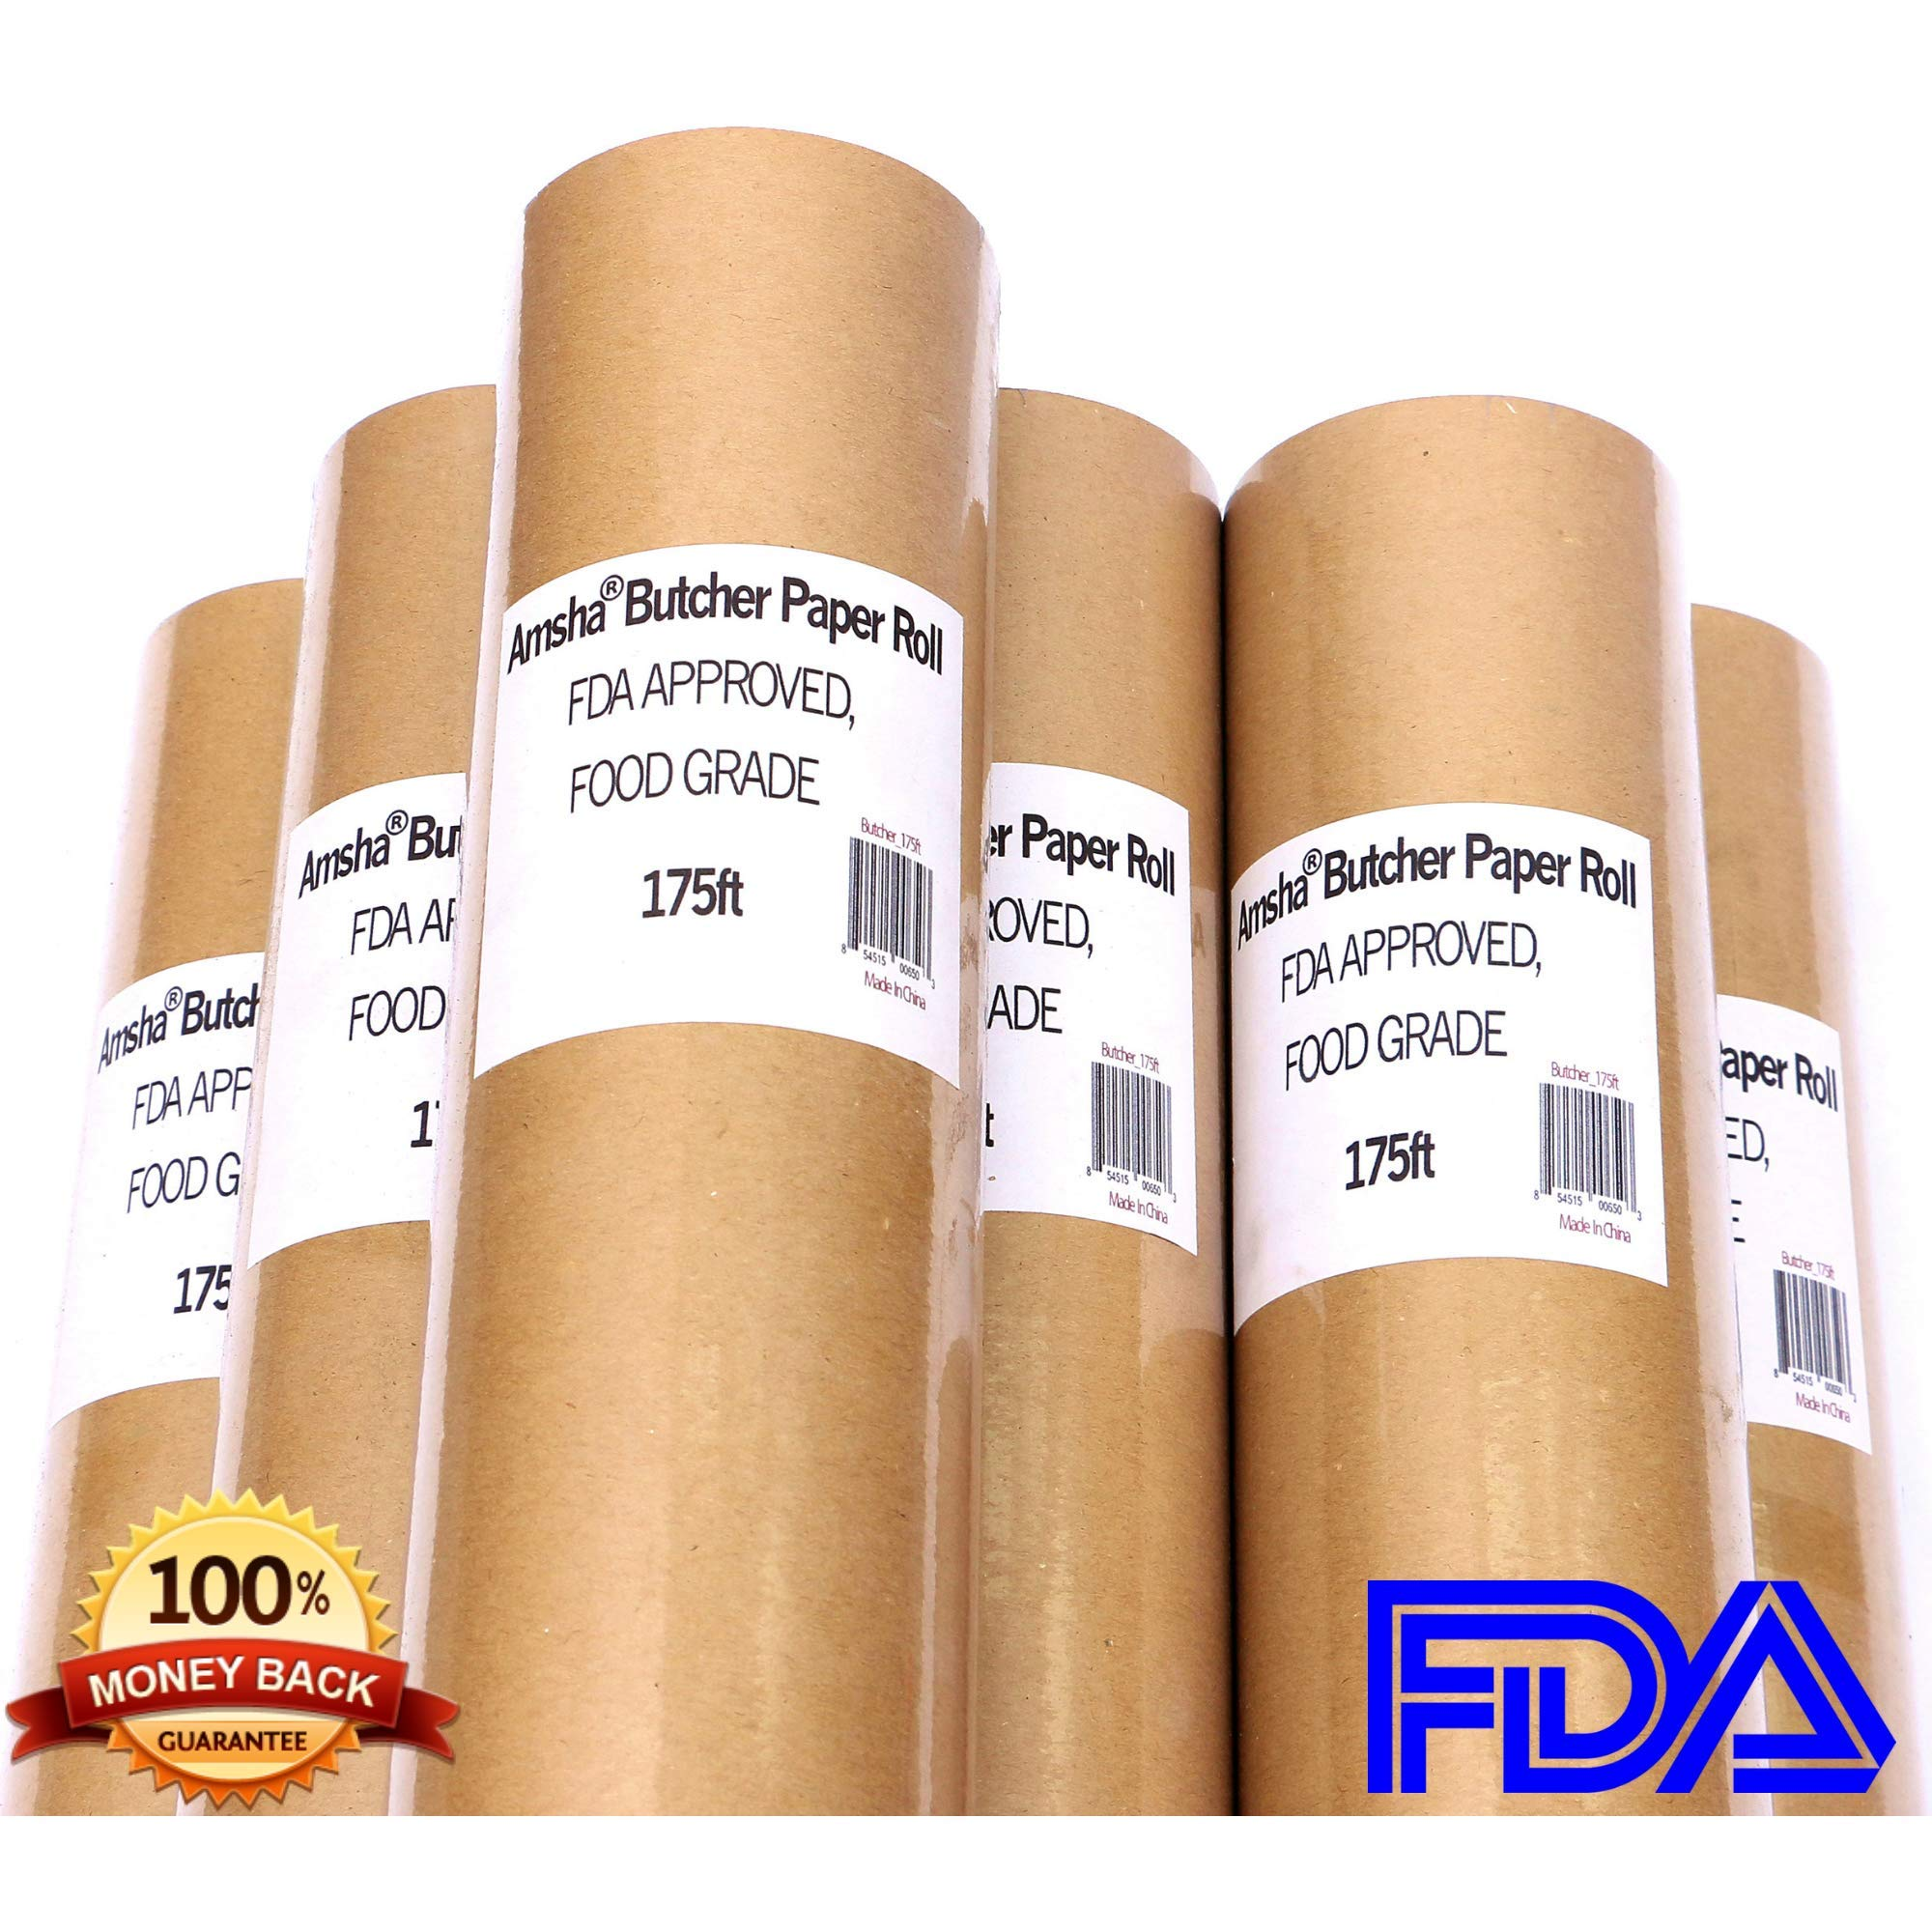 Butcher Paper Roll 18'' X 175' (2100'') Food Grade FDA Approved, Unwaxed, Uncoated and Unbleached, Perfect for Slow Smoke Beef/Pork w/Indirect Heat, Gift Wrapping, Smoker, Microwave & Freezer Safe